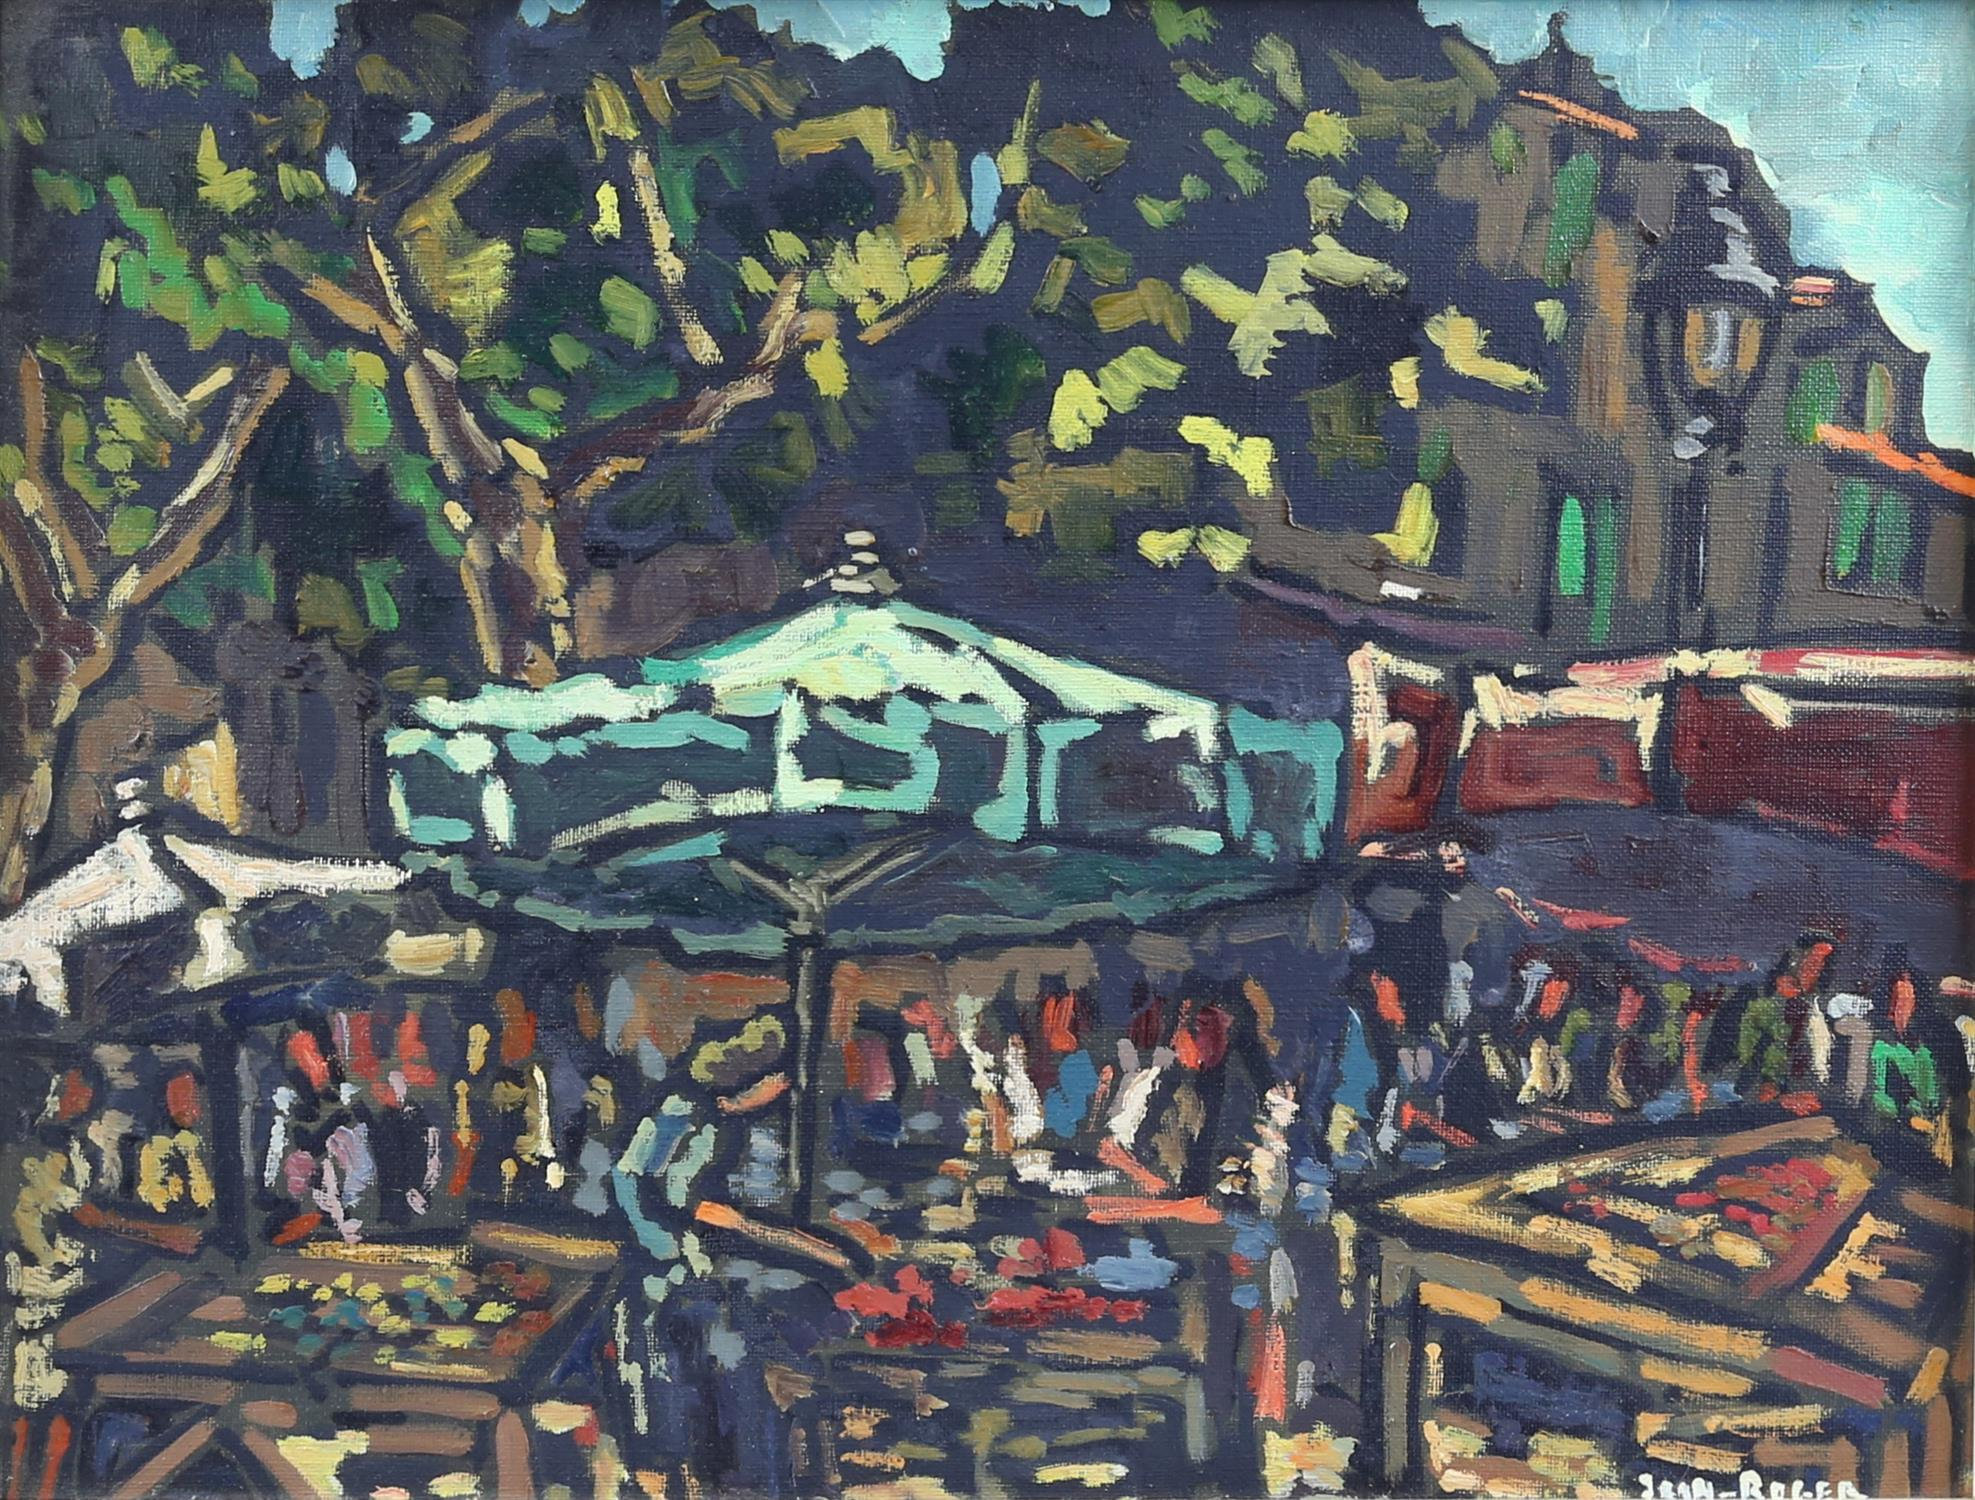 Jean-Roger (European, 1924-2015), continental market scene. Oil on canvas. Signed lower right.